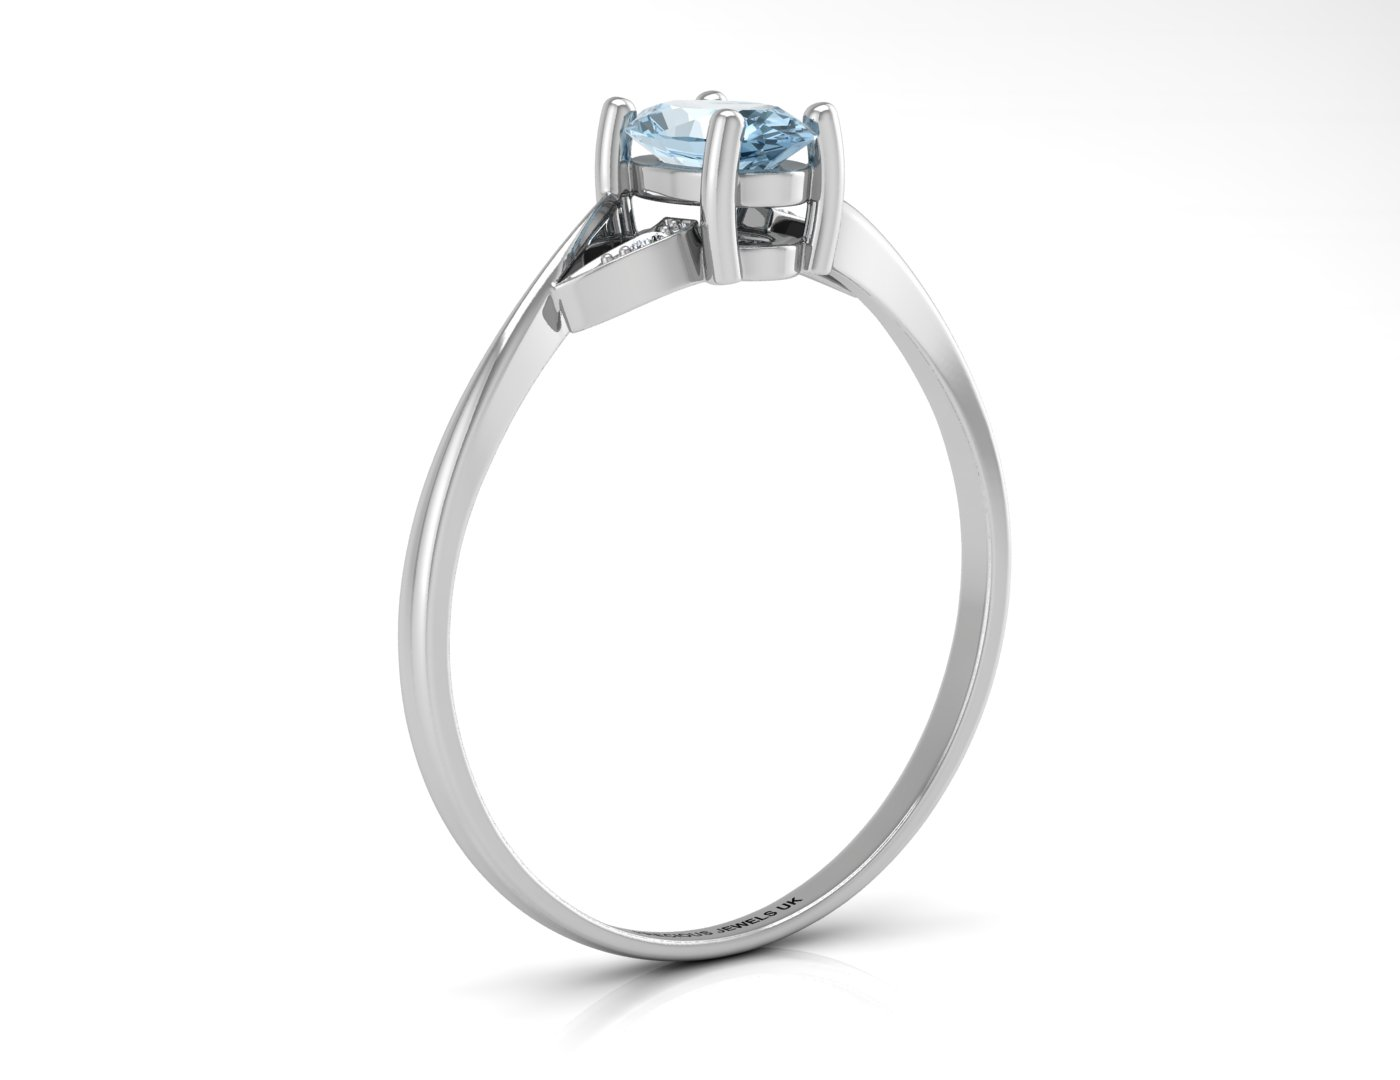 9ct White Gold Diamond And Blue Topaz Ring - Image 2 of 4